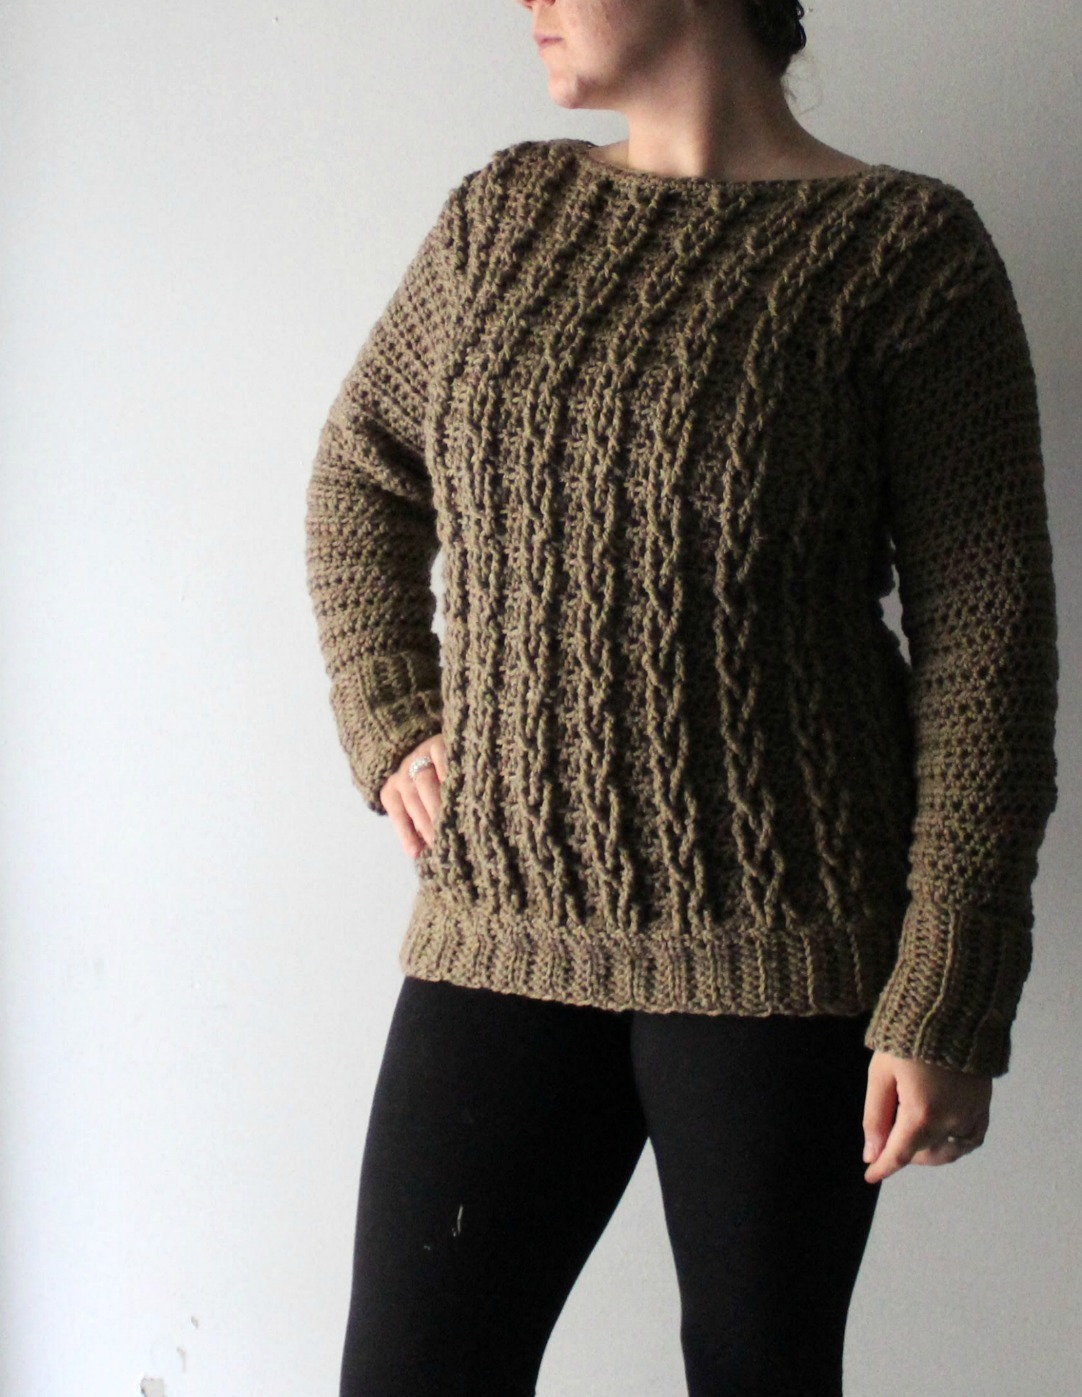 295f42bba5f0 Your First Crochet Cable Sweater Project! - YarnHookNeedles